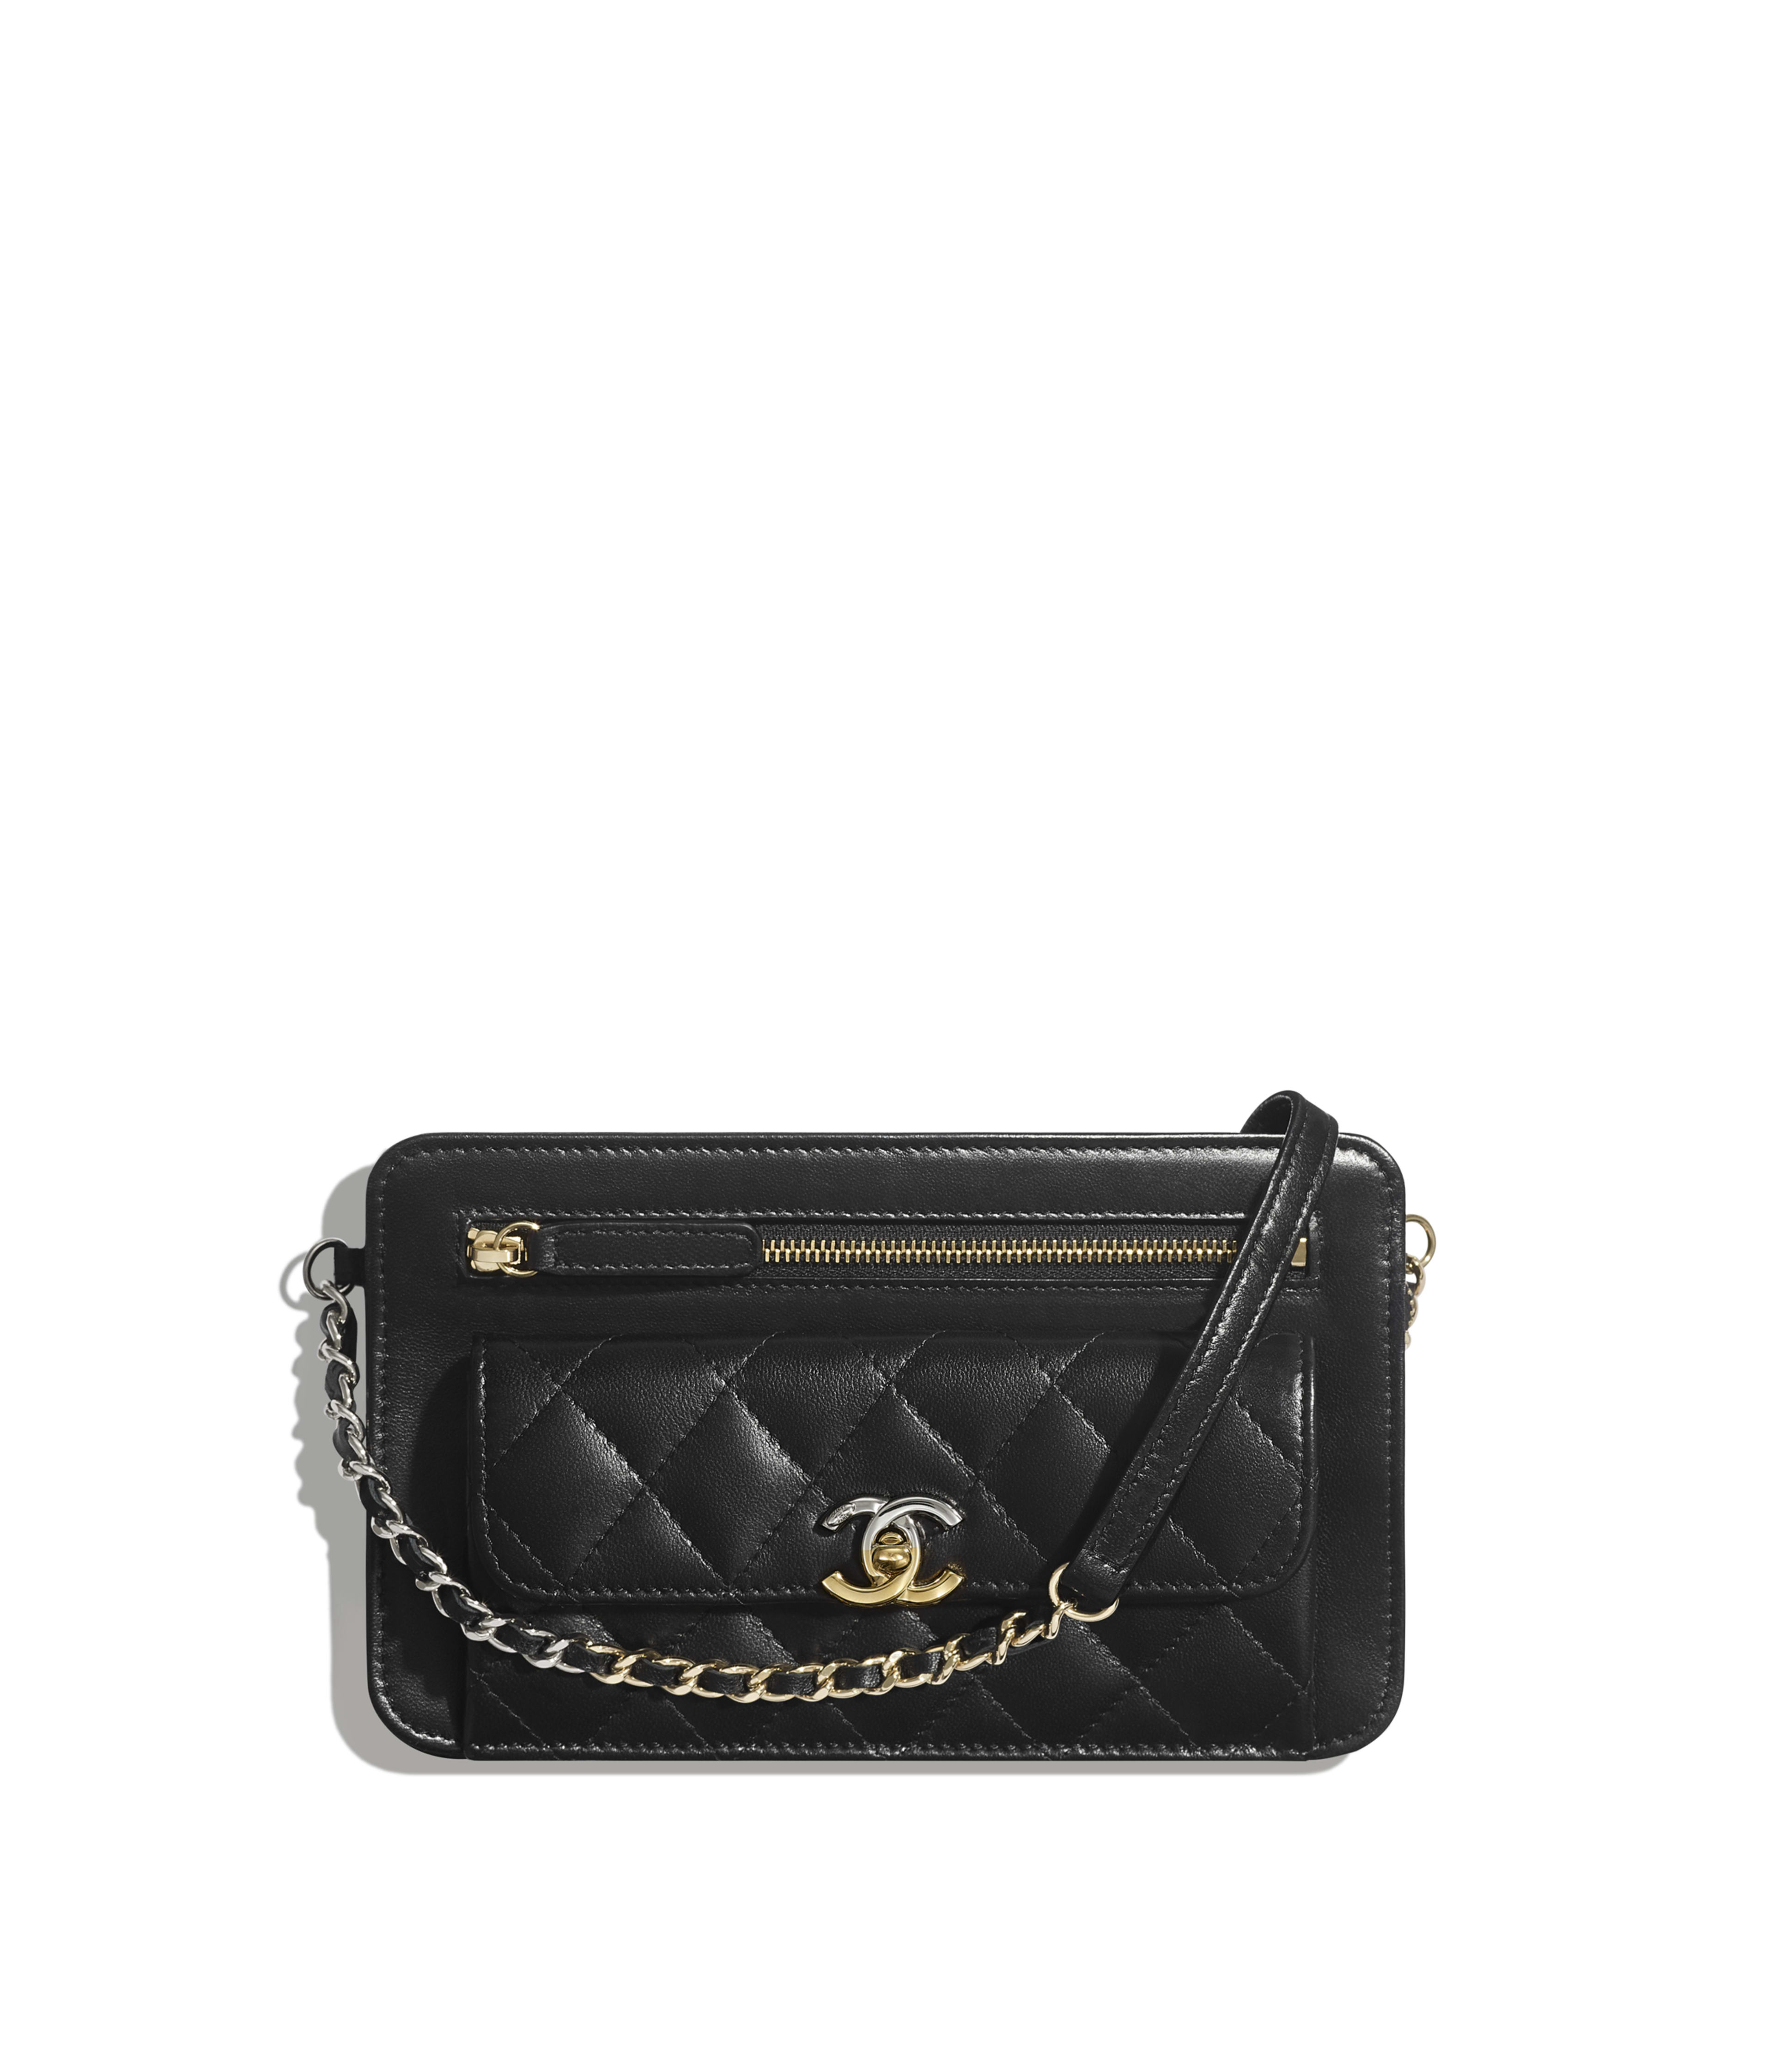 4be08a6777b6 Clutches with Chain - Small leather goods